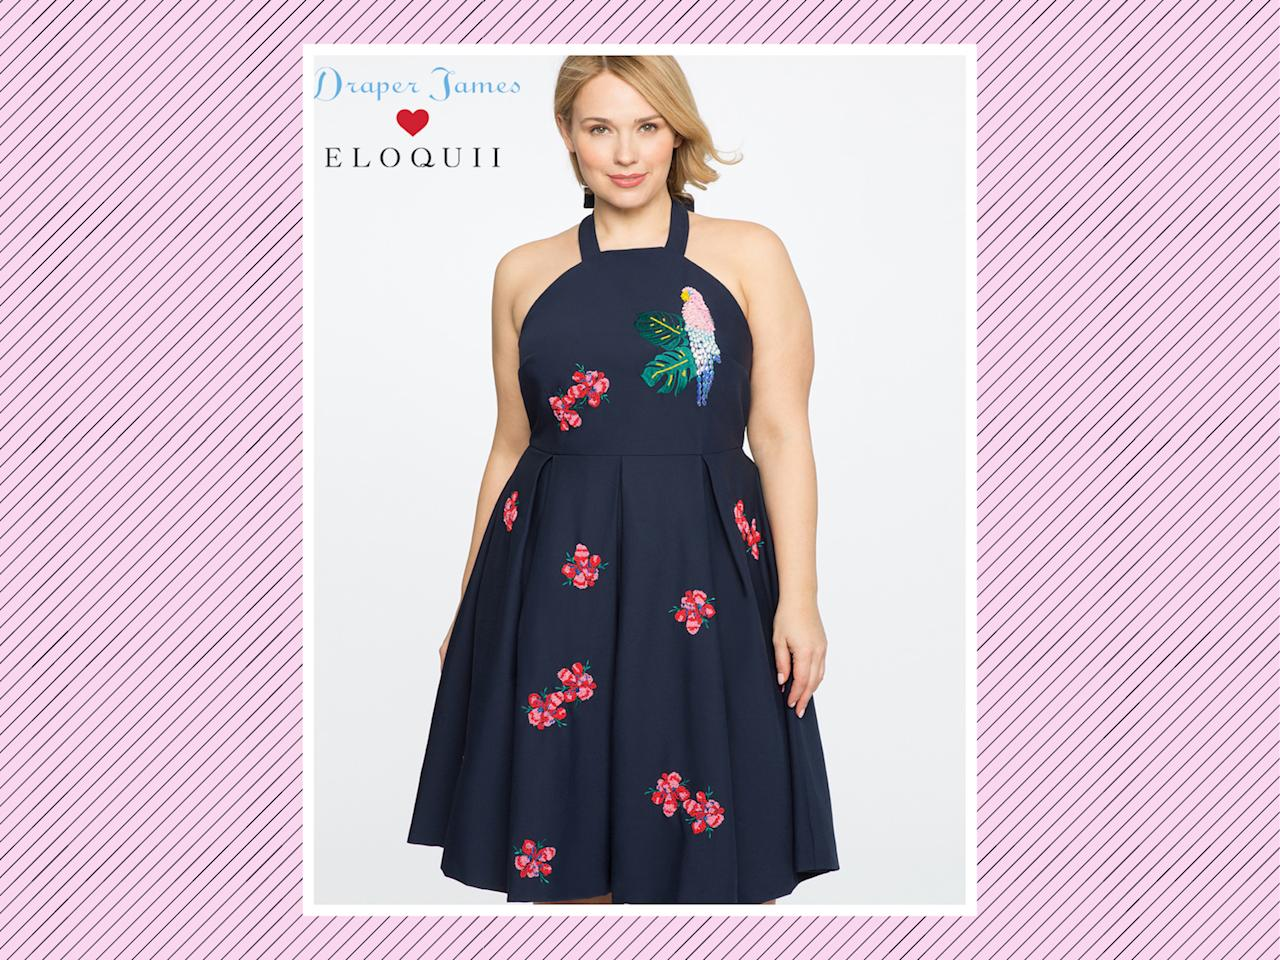 "<p>Draper James for Eloquii parrot-embellished dress, $225, <a rel=""nofollow"" href=""http://www.eloquii.com/draper-james-for-eloquii-parrot-embellished-dress/1226048.html?cgid=draper-james&dwvar_1226048_colorCode=49&start=6"">Eloquii</a> (Photo: Eloquii) </p>"